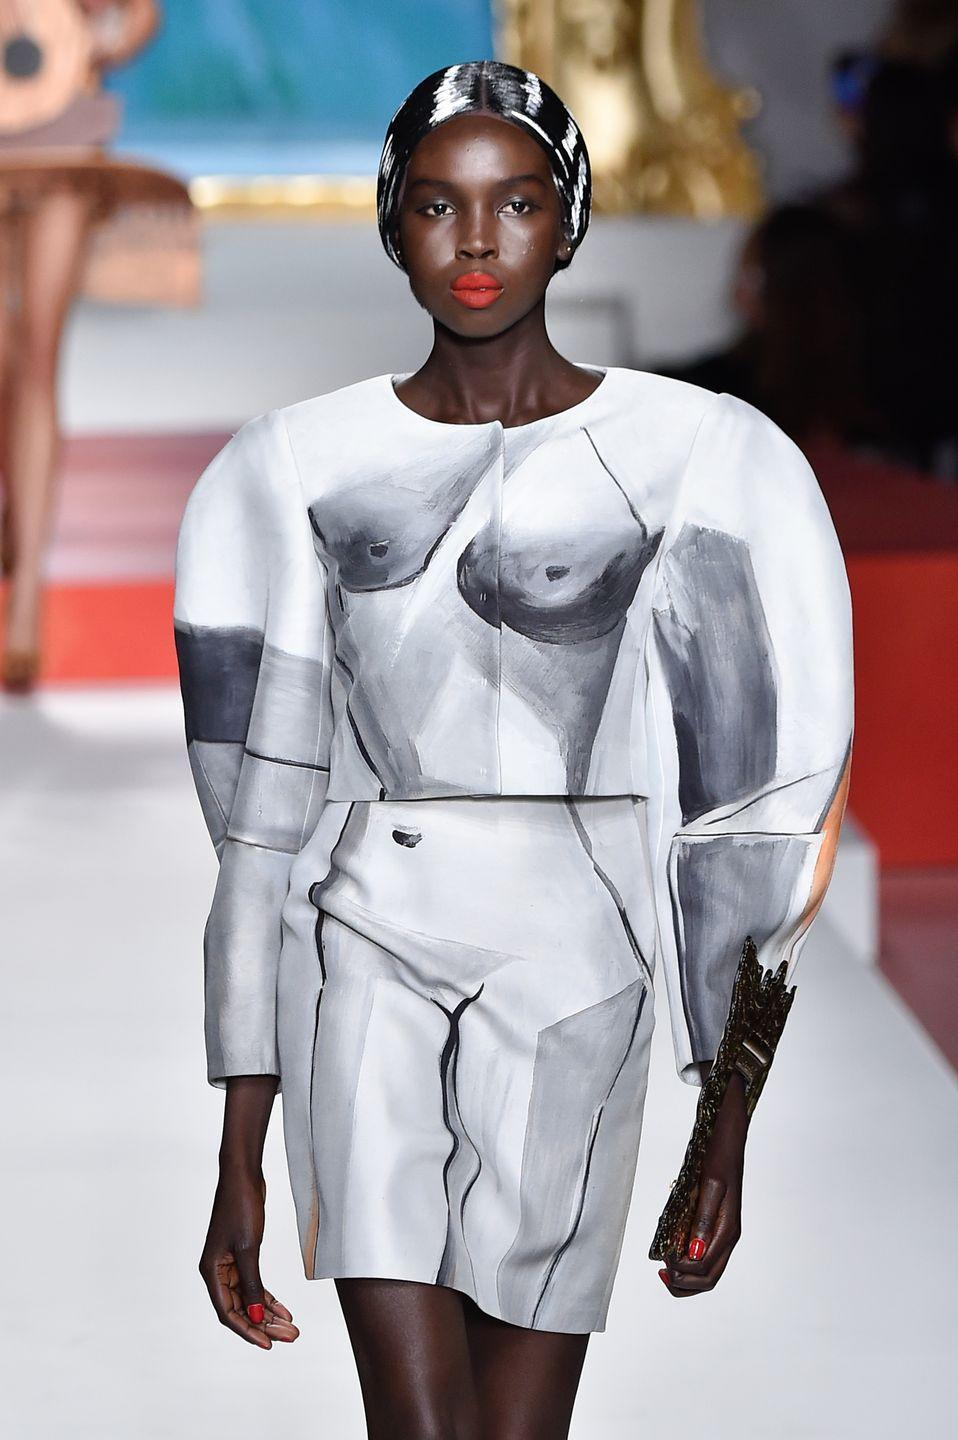 <p>Ajok Madel is new to the modeling world but has already made a name for herself by booking runway shows for Alexander McQueen, Tom Ford and Dries van Noten. She's South Sudanese, but grew up in Australia. </p>